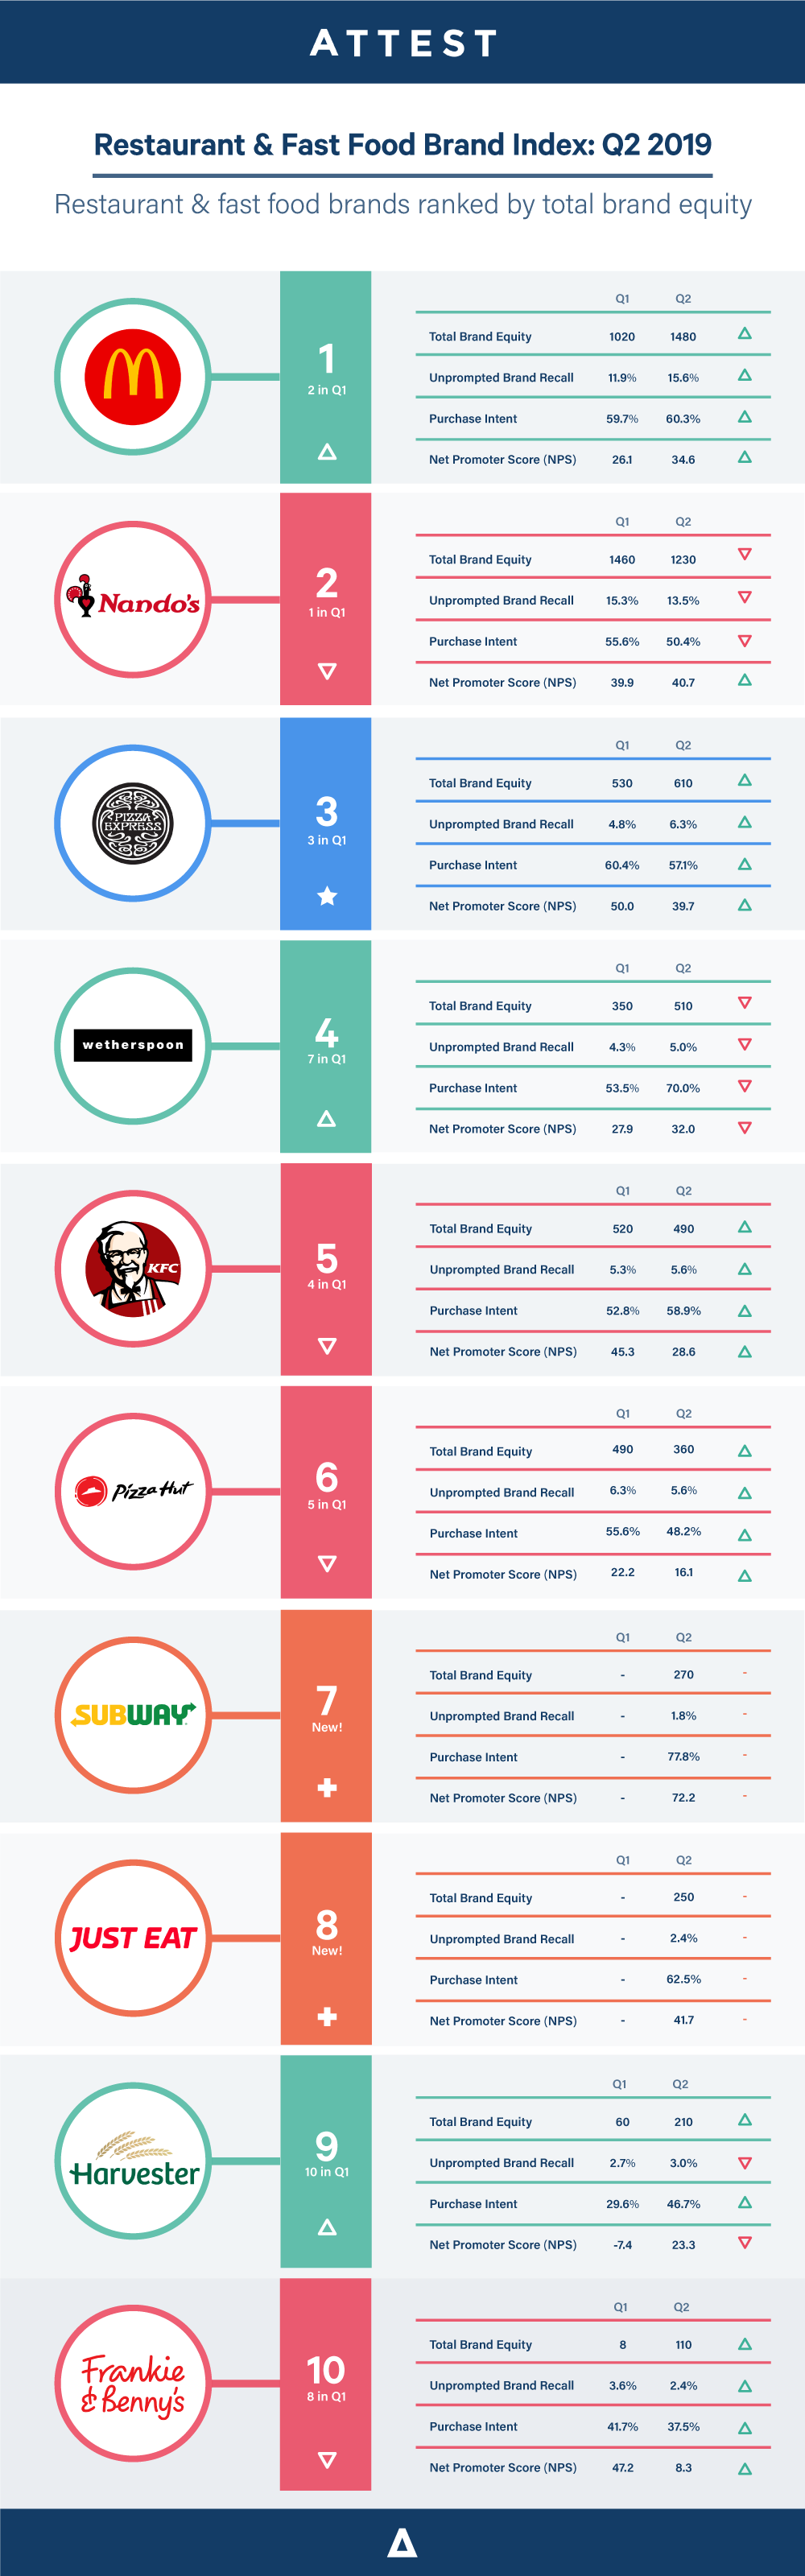 Brand-index-restaurants-2019-q2